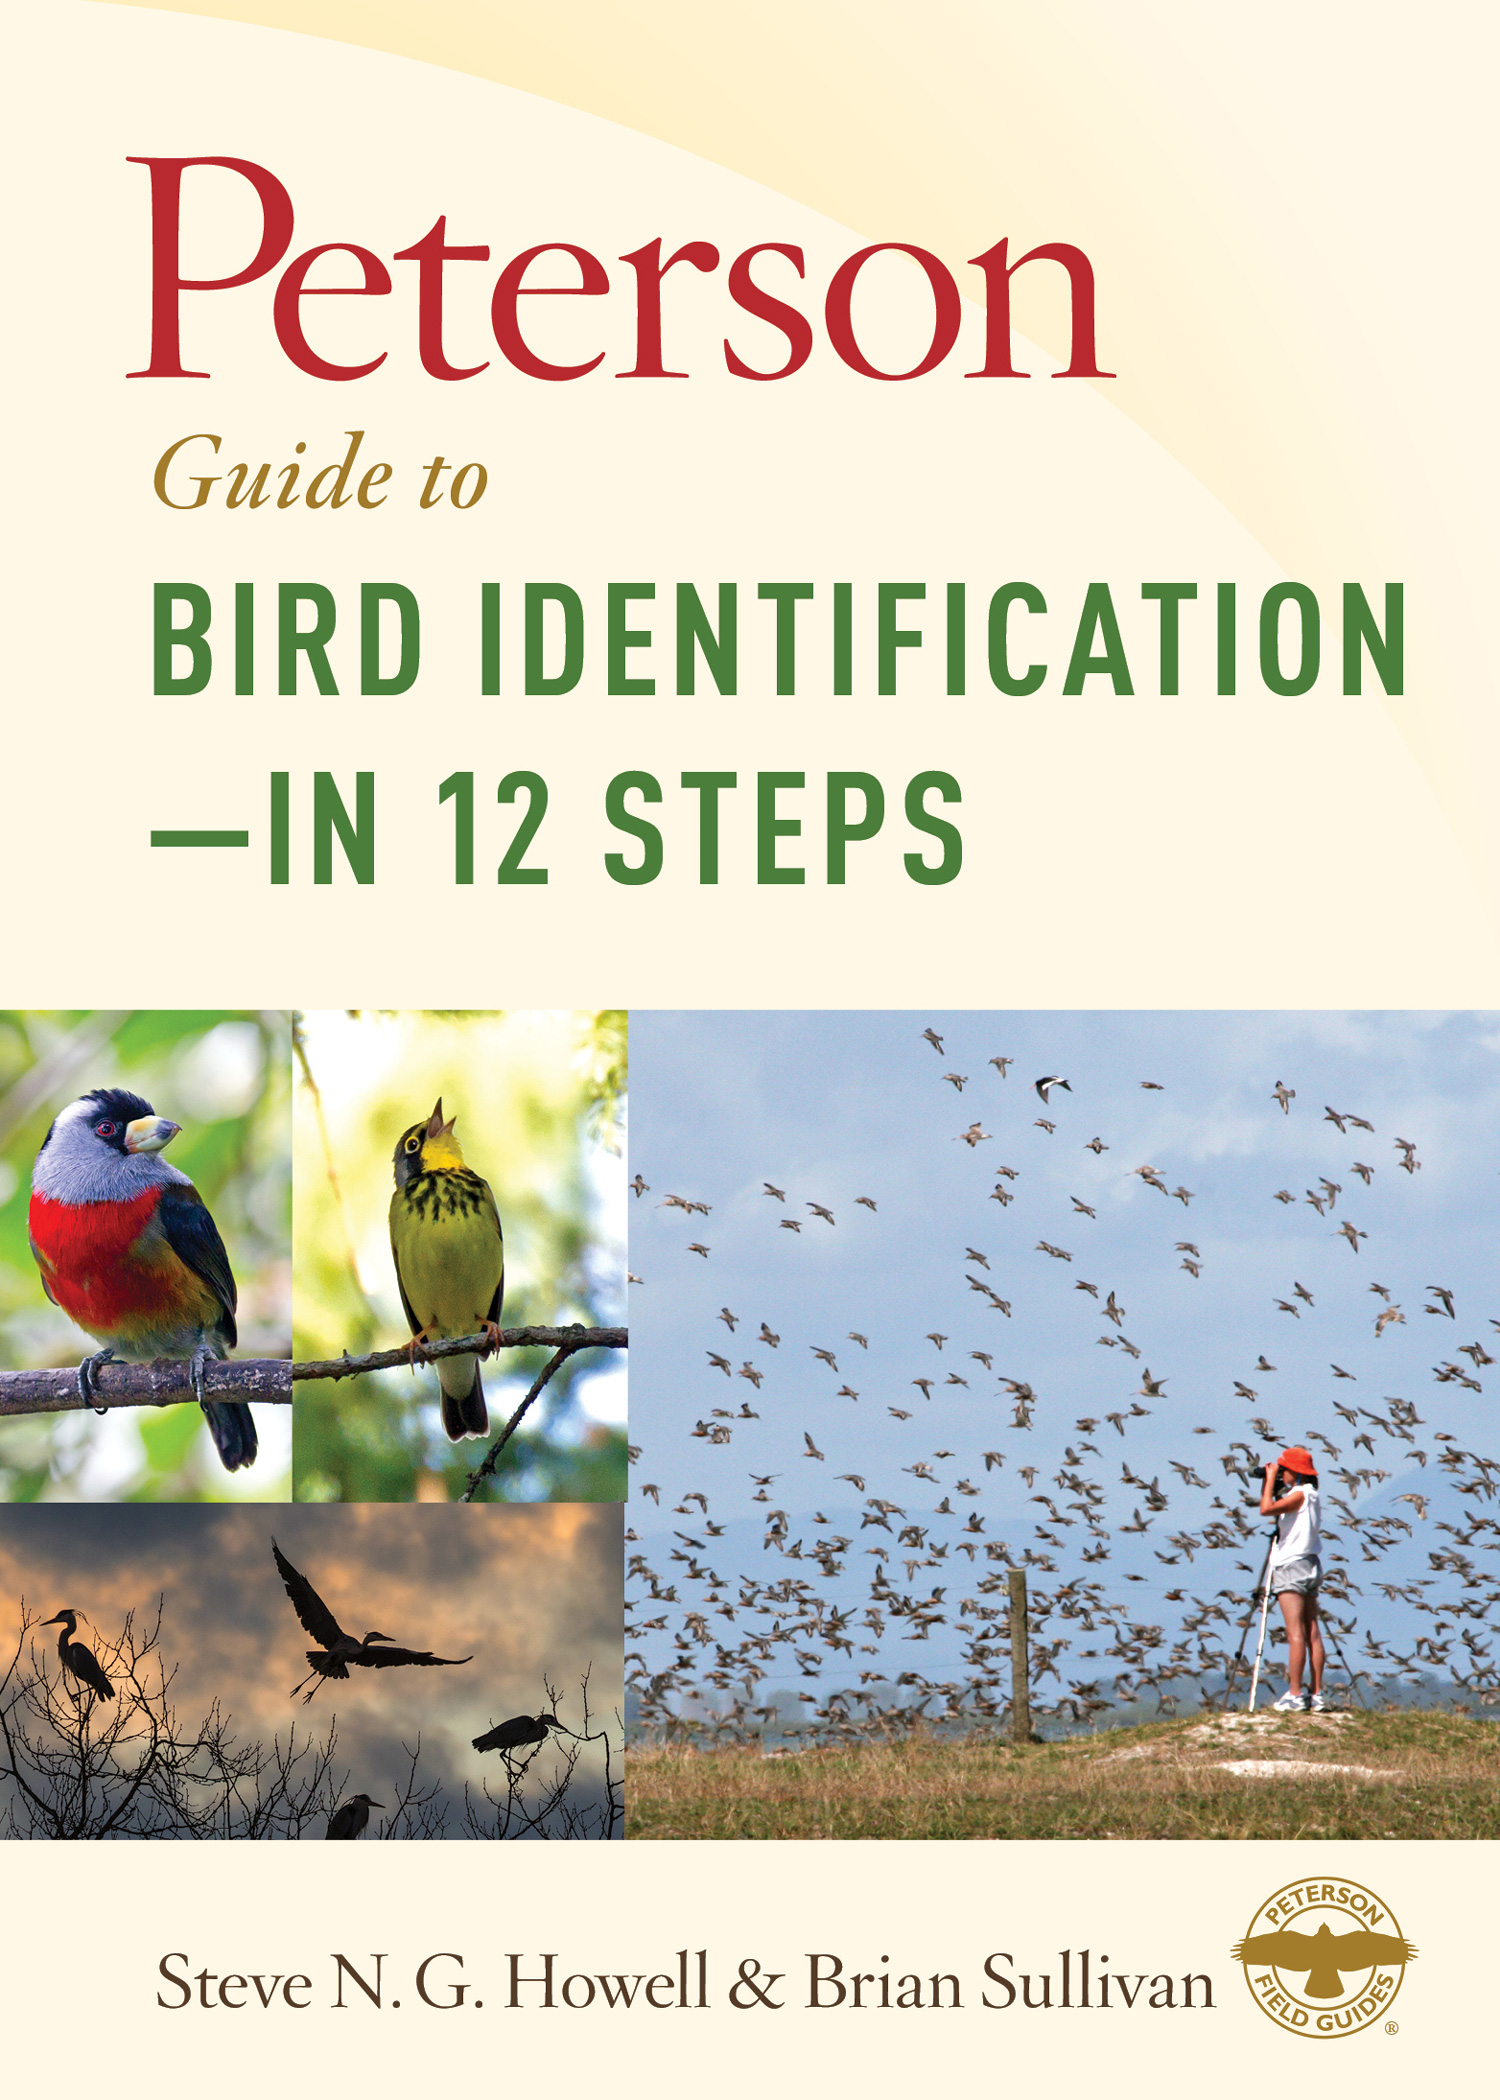 Peterson Guide to Bird Identification—in 12 Steps-9781328662064